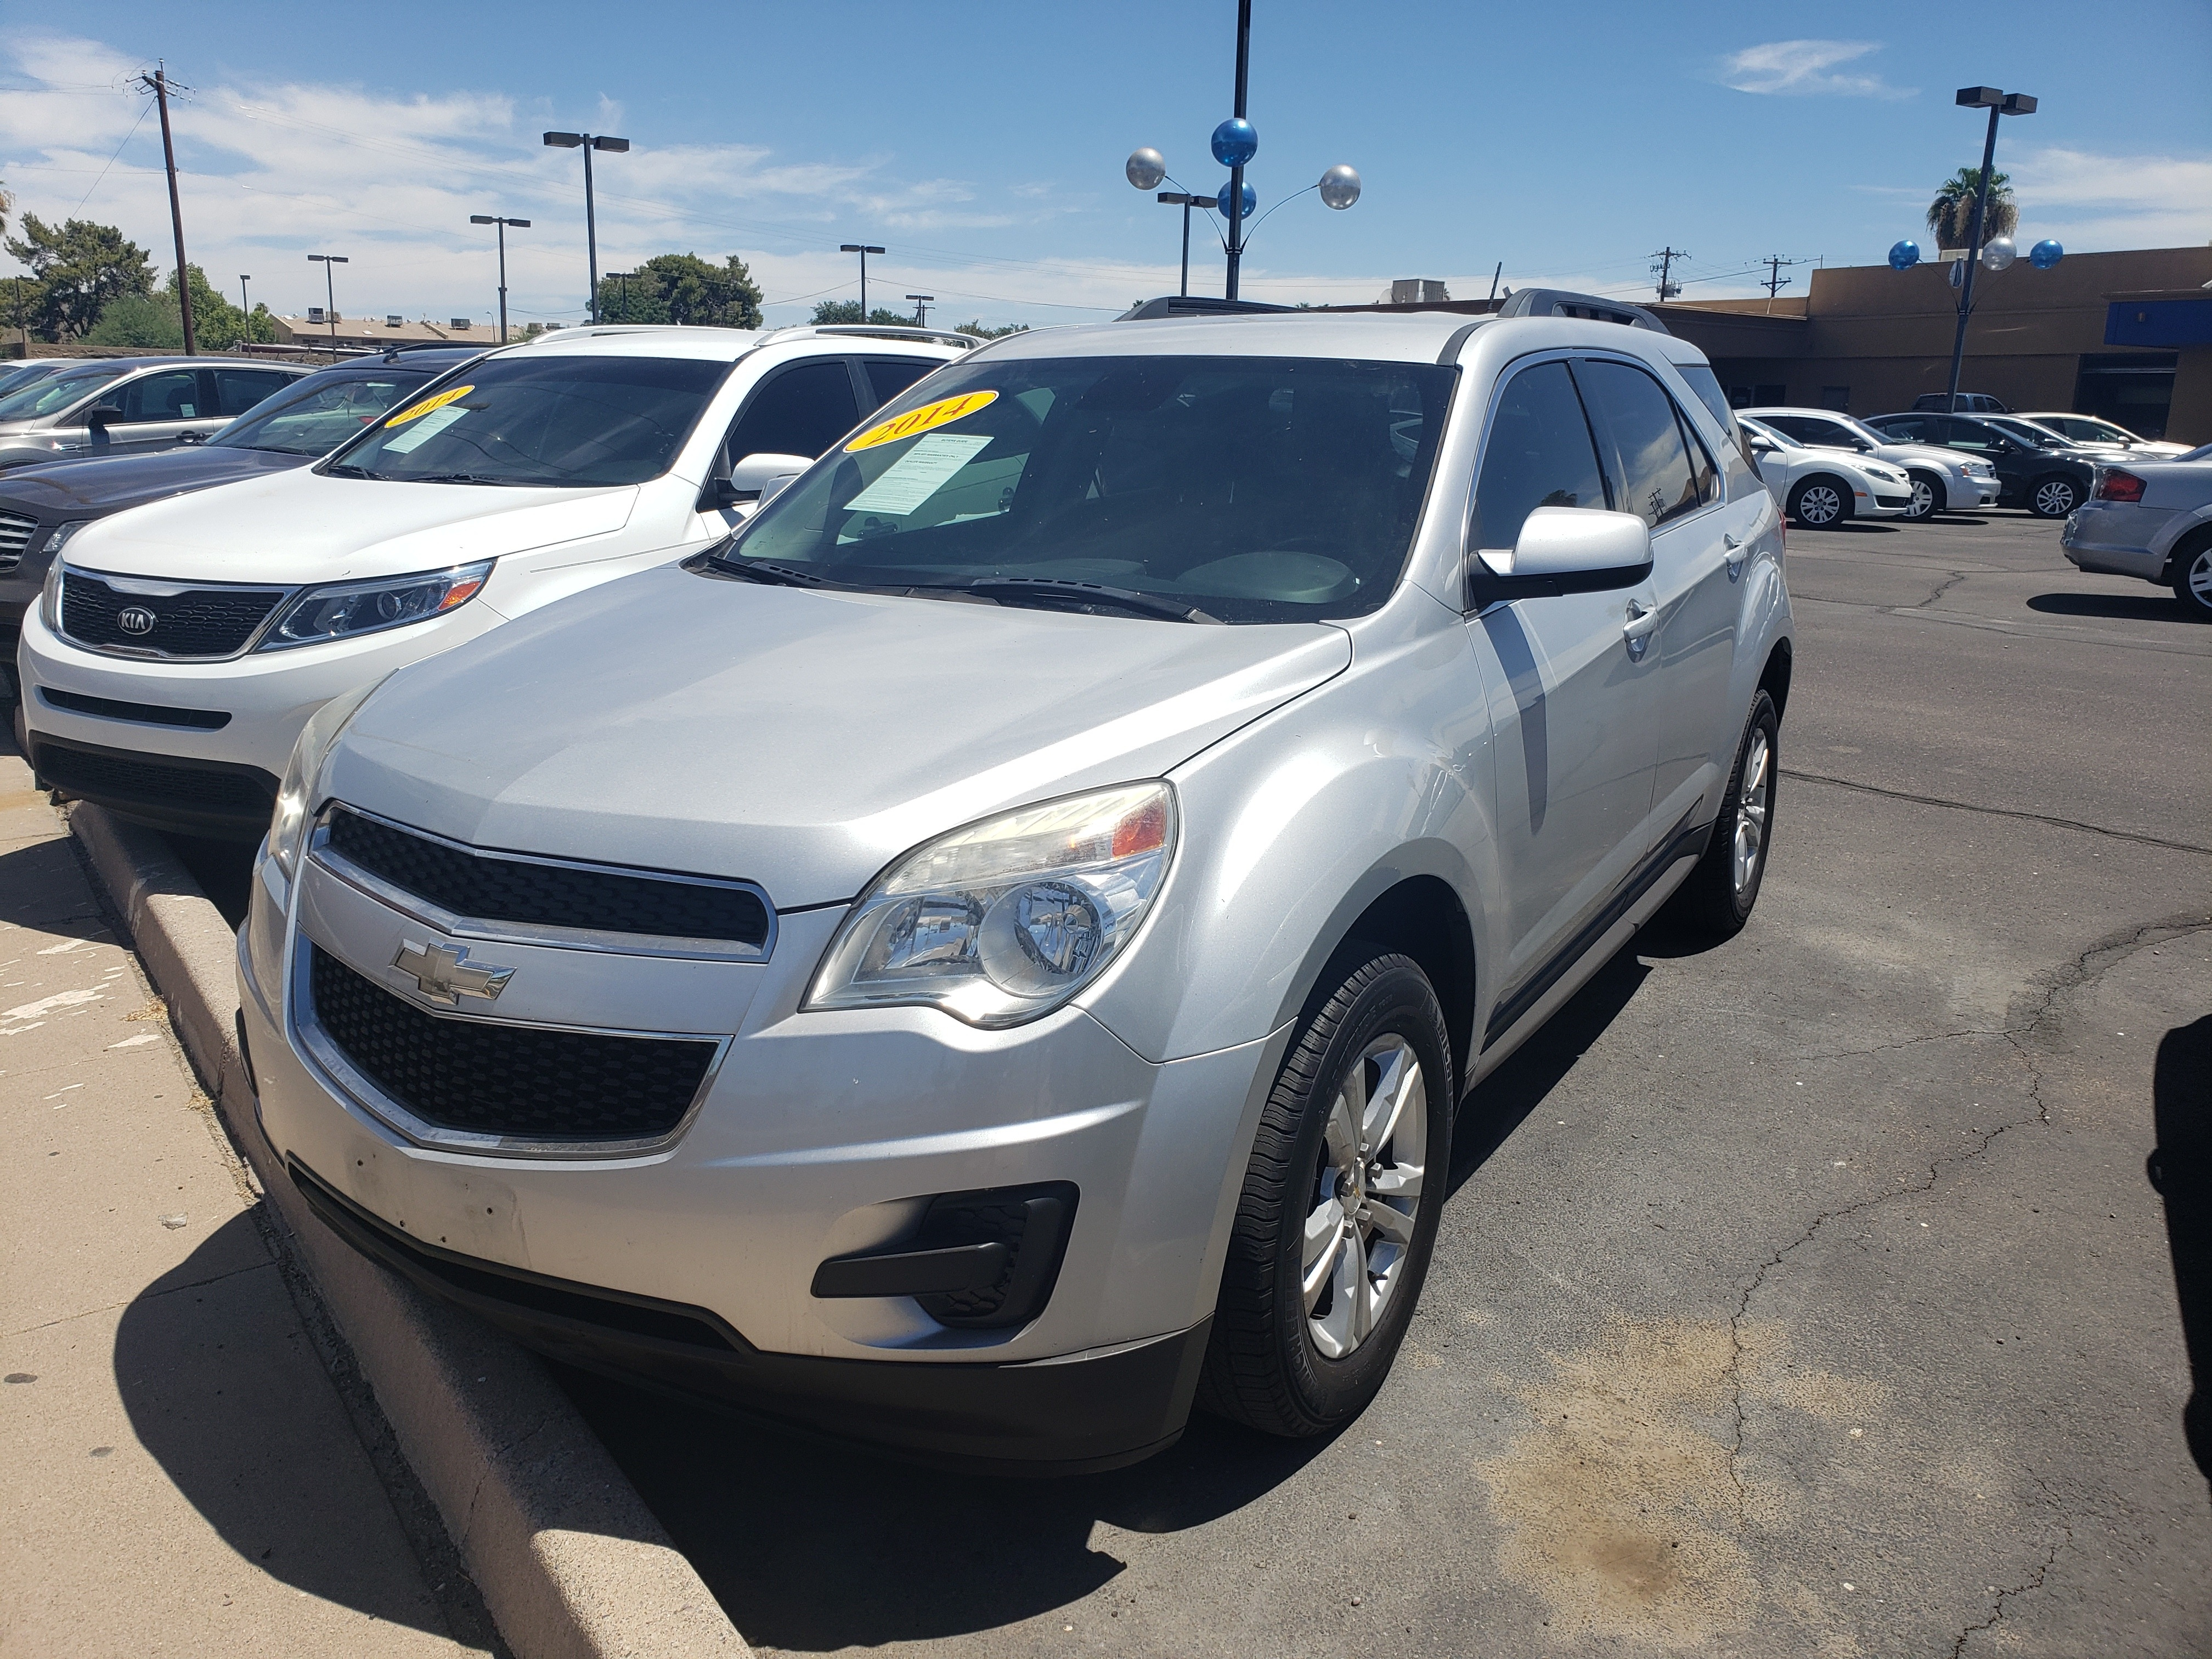 Pre-Owned 2014 Chevrolet EQUINOX 4 DOOR WAGON